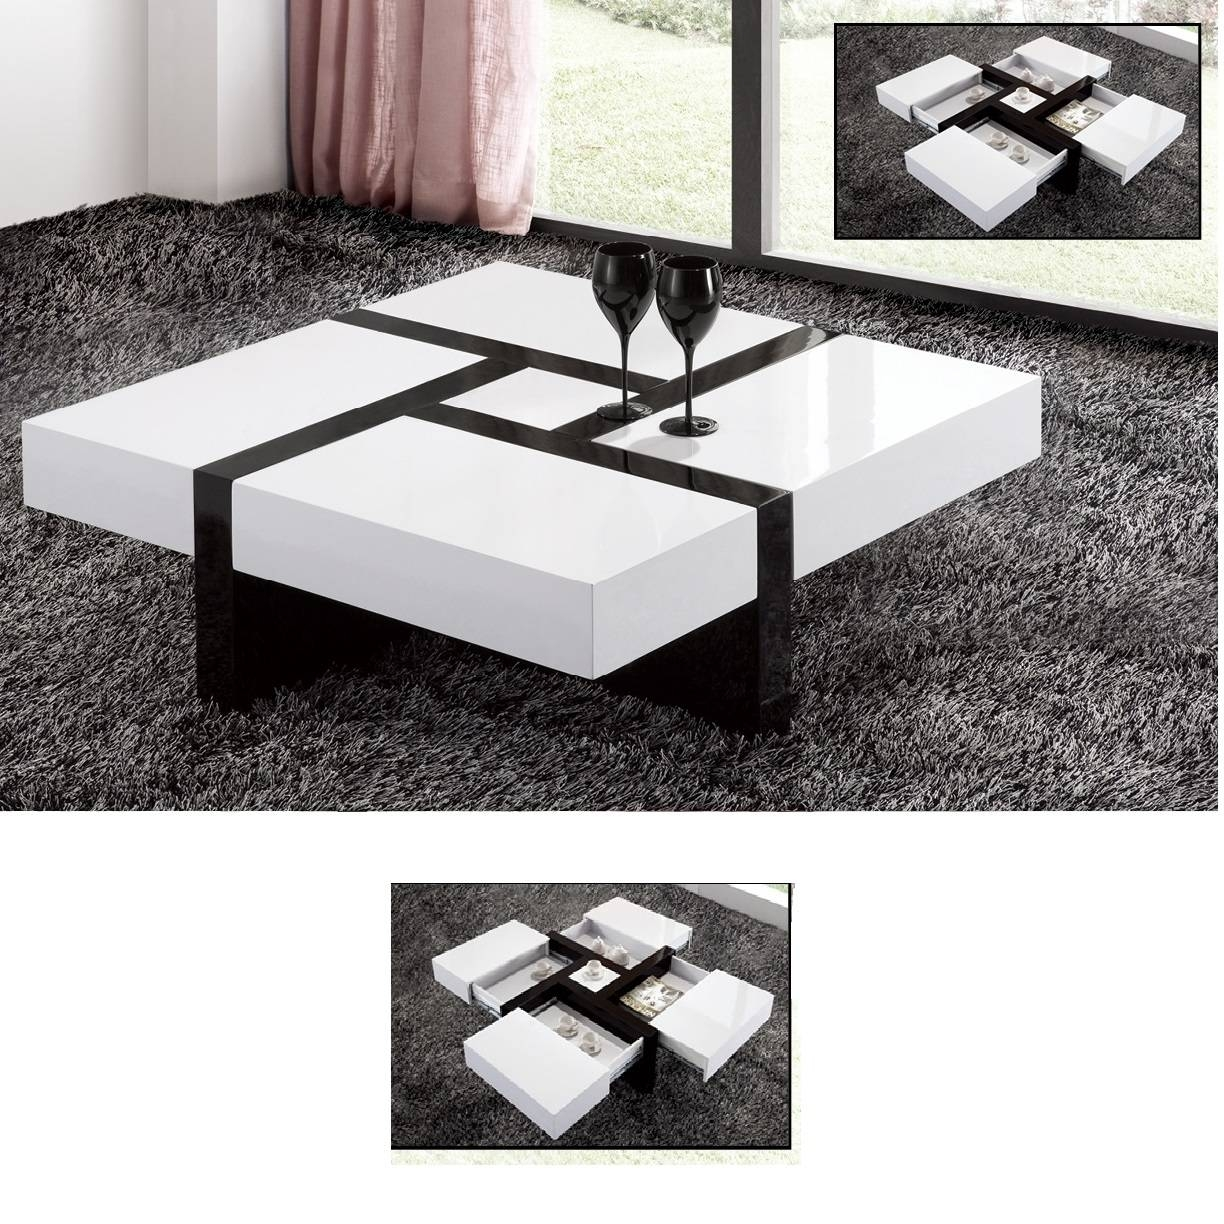 High Gloss White Coffee Table With Storage | Coffee Tables Decoration In White Gloss Coffee Tables (View 15 of 30)